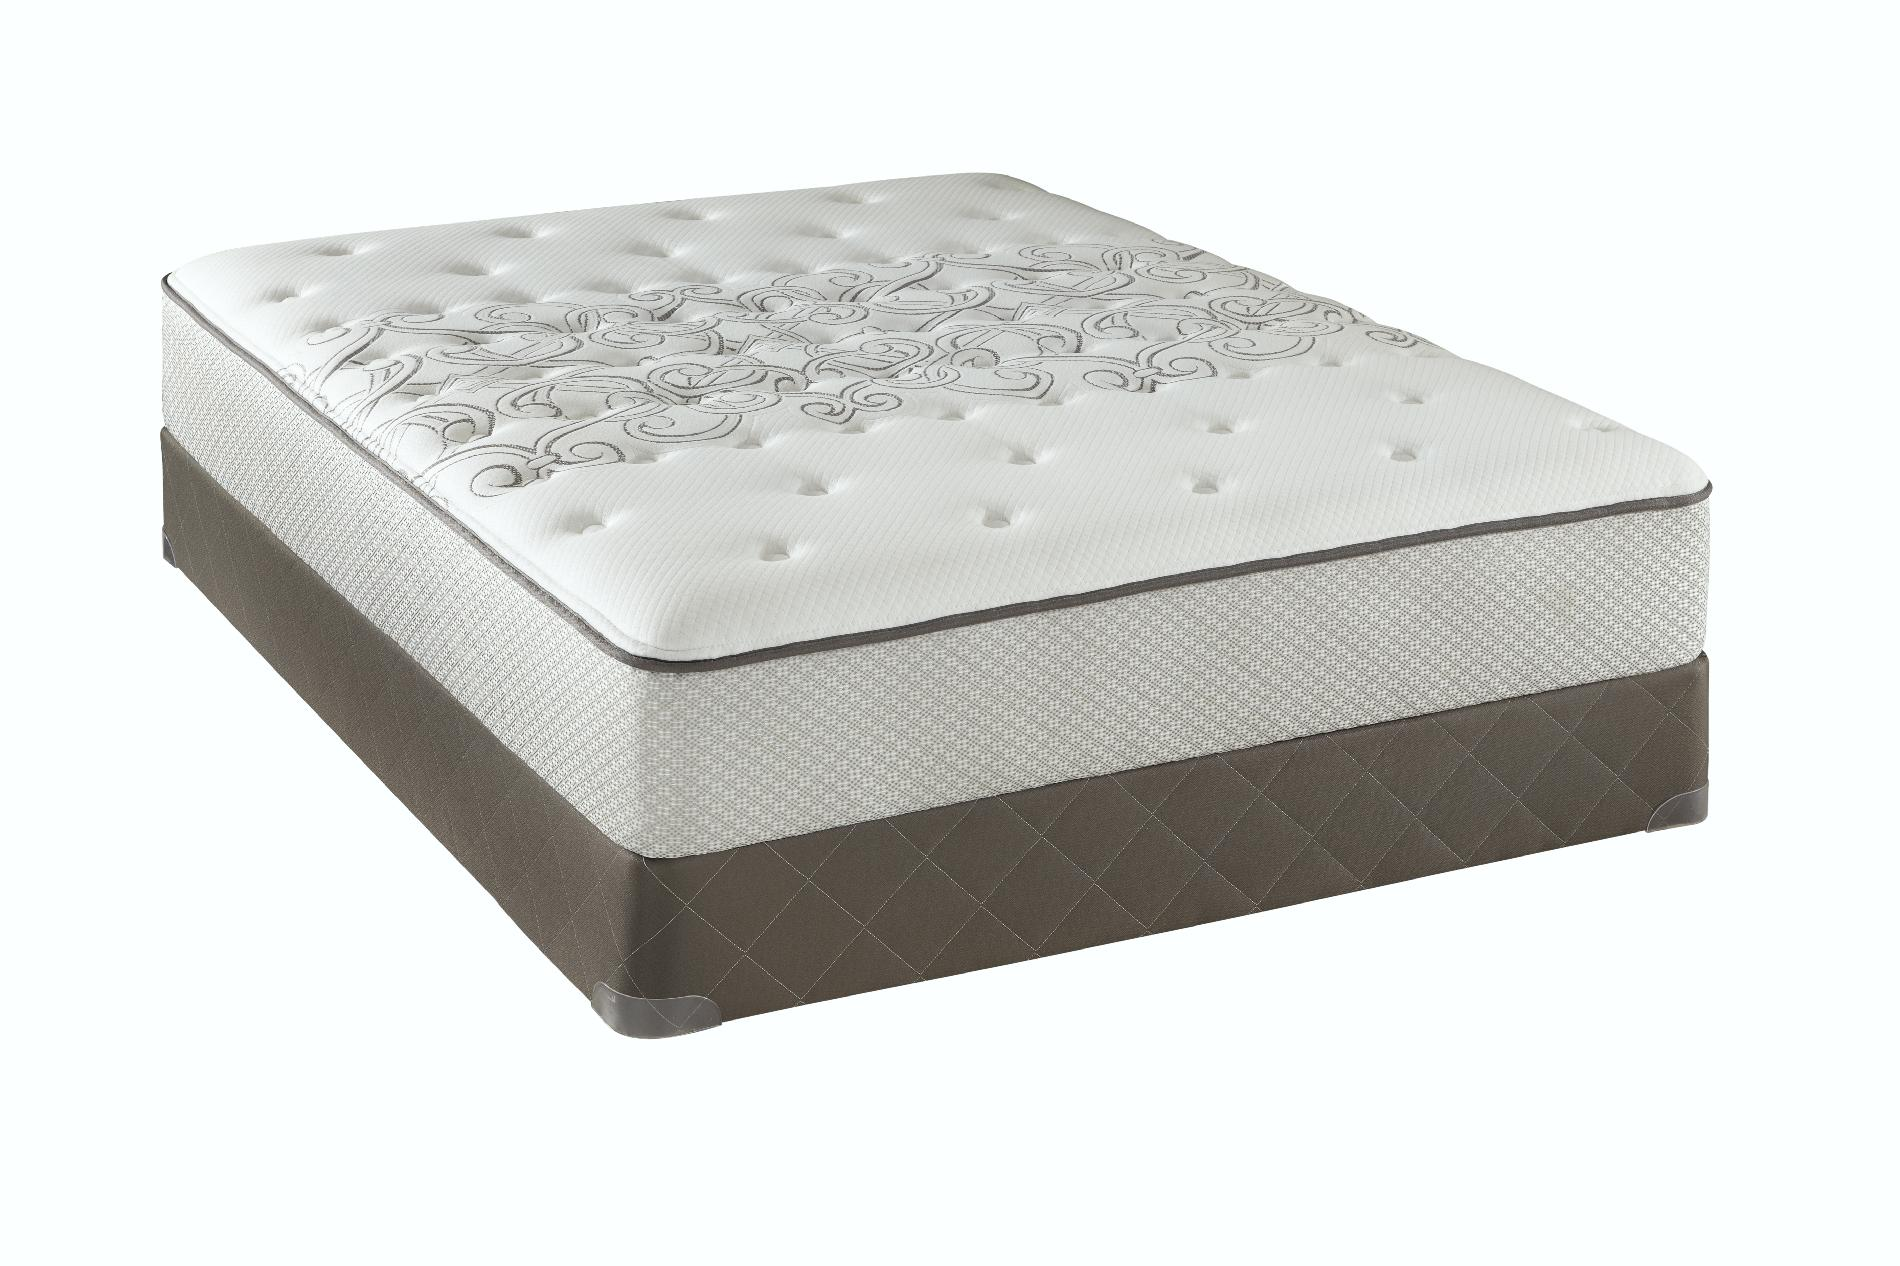 Sealy Posturepedic Cookshire Ti2, Firm, Full Mattress Only